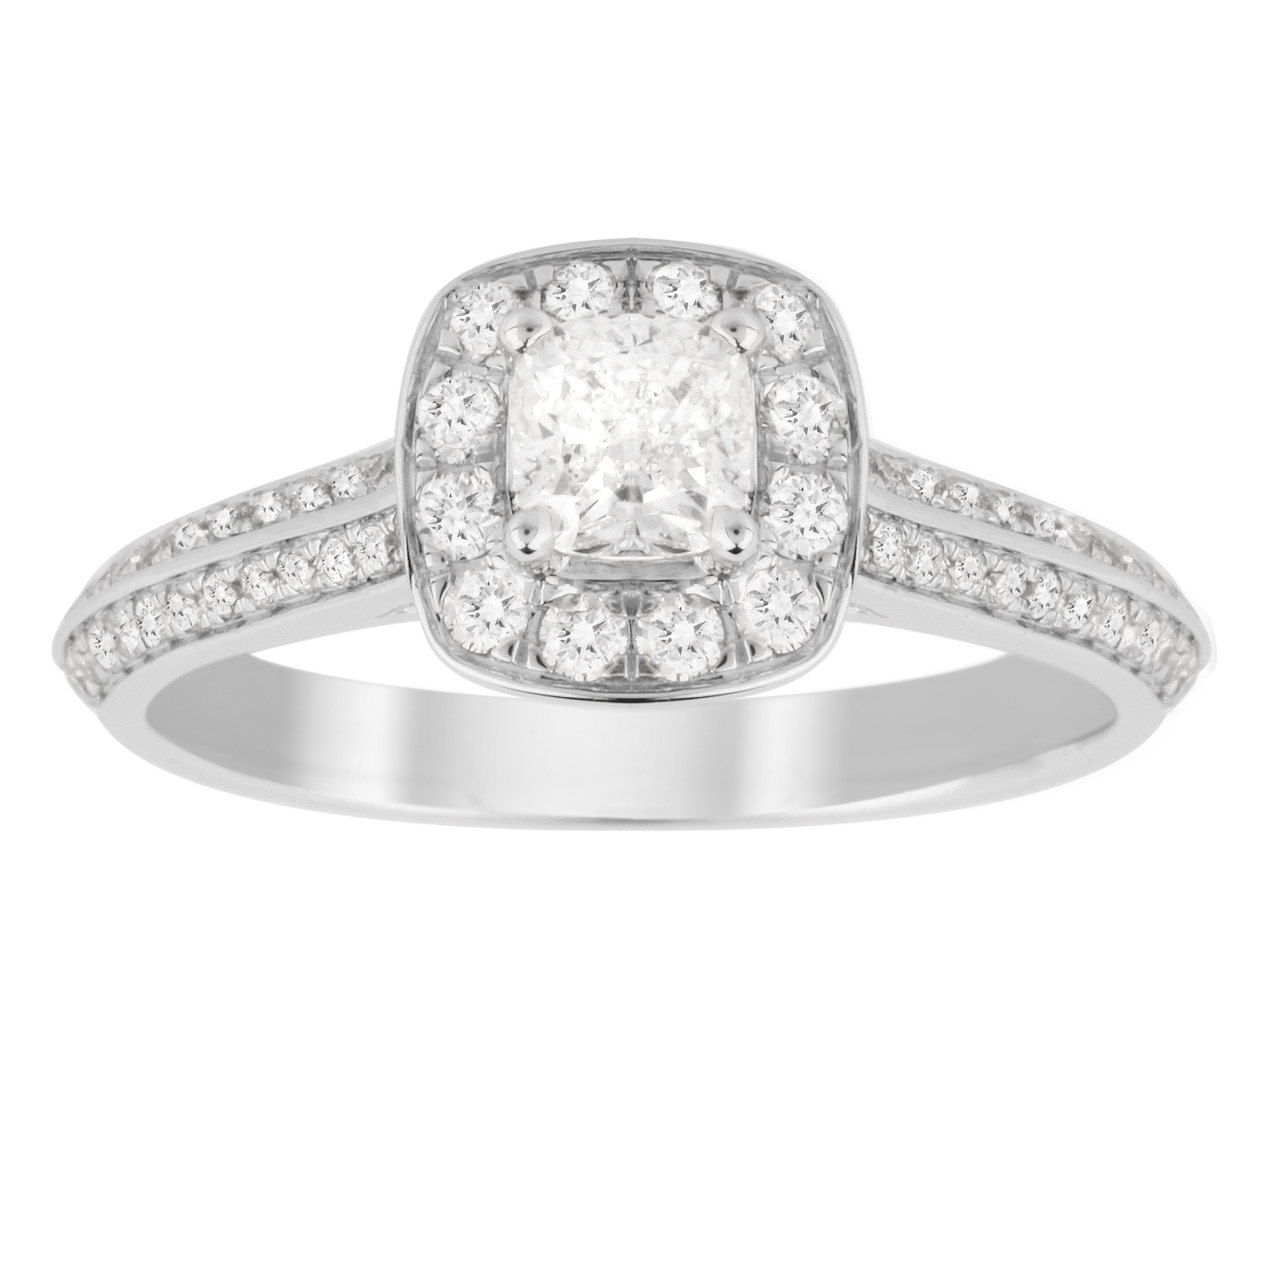 Jenny Packham Cushion Cut 0.95 Carat Total Weight Halo Diamond Ring in 18 Carat White Gold